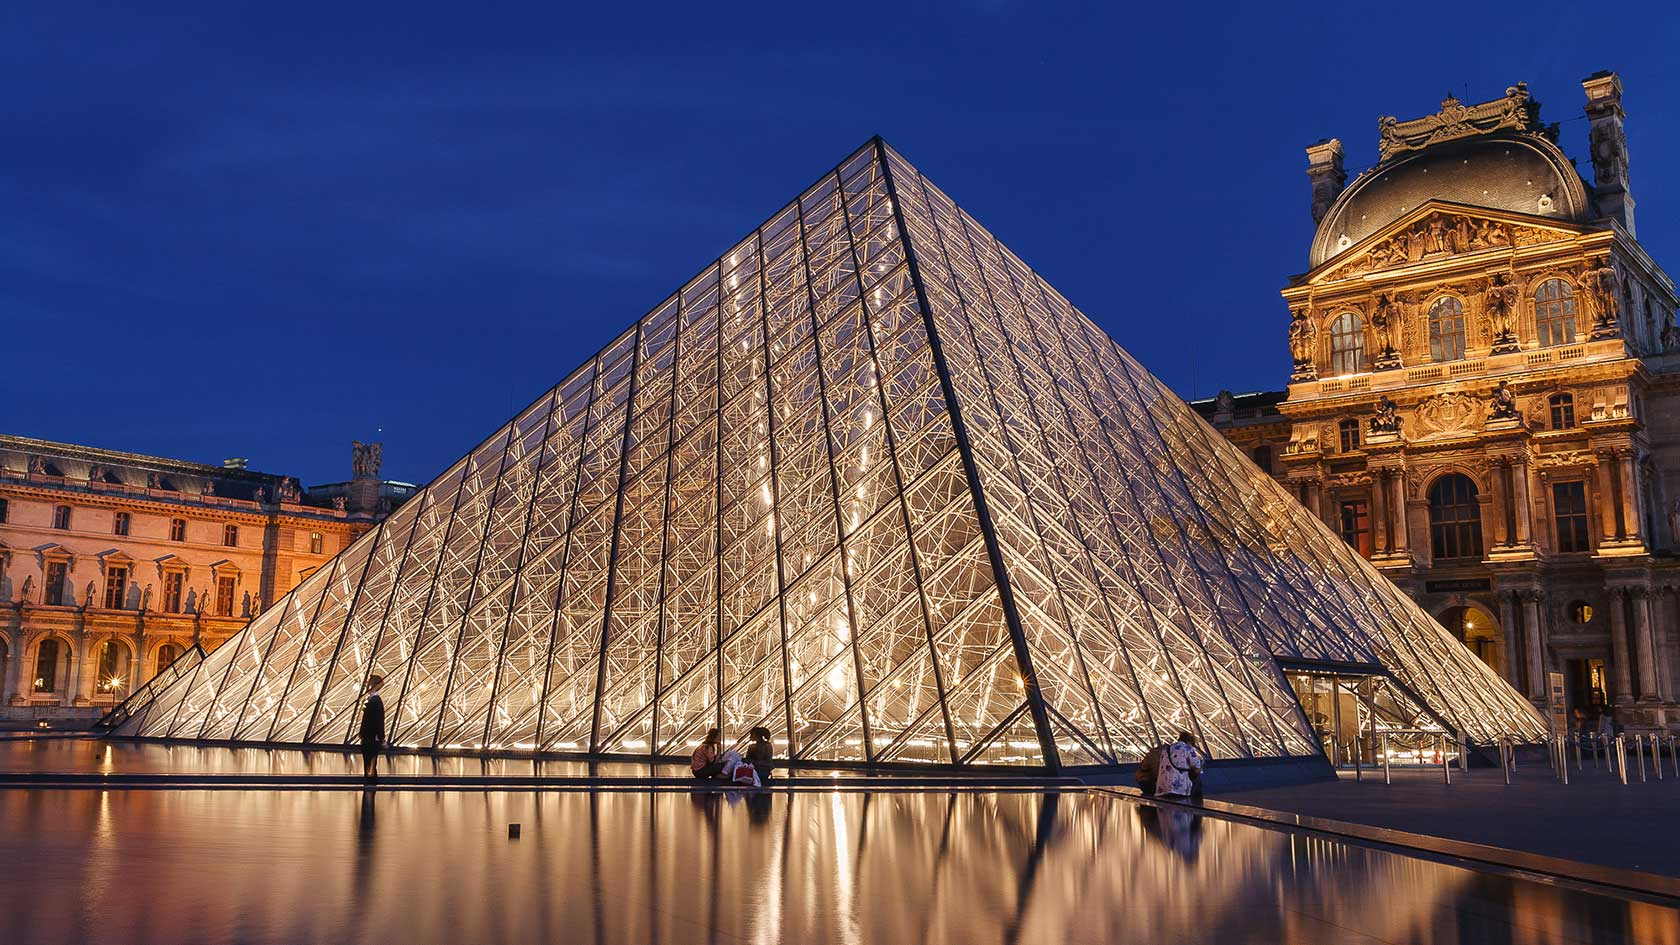 France, The Louvre Palace and the Pyramid